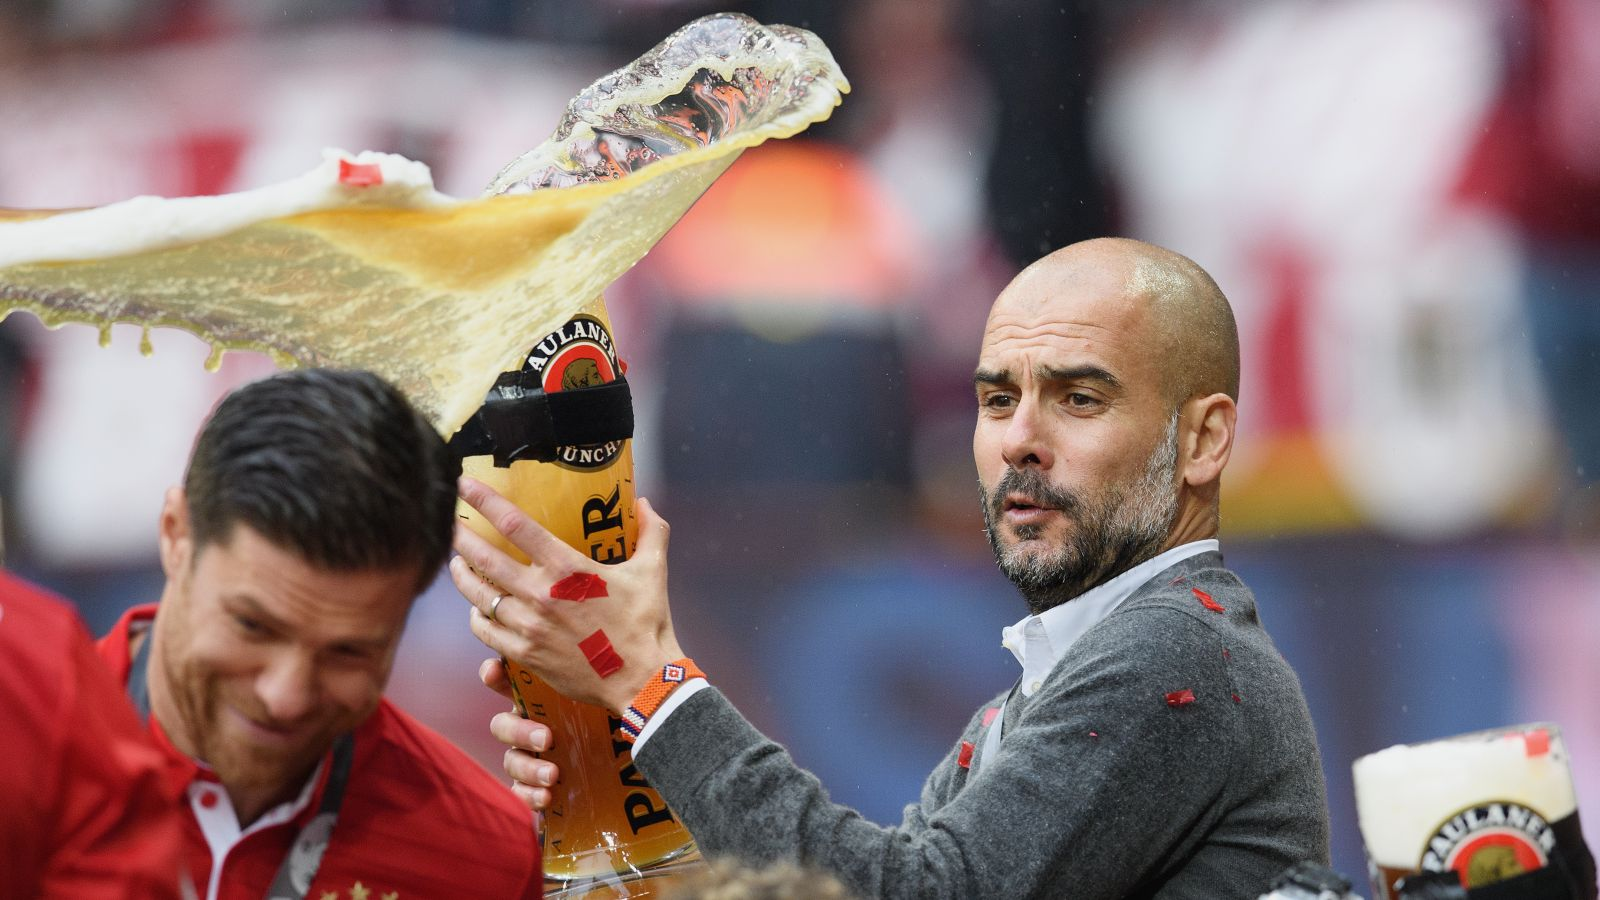 Premier League will be a huge test for Guardiola, says Fernandez